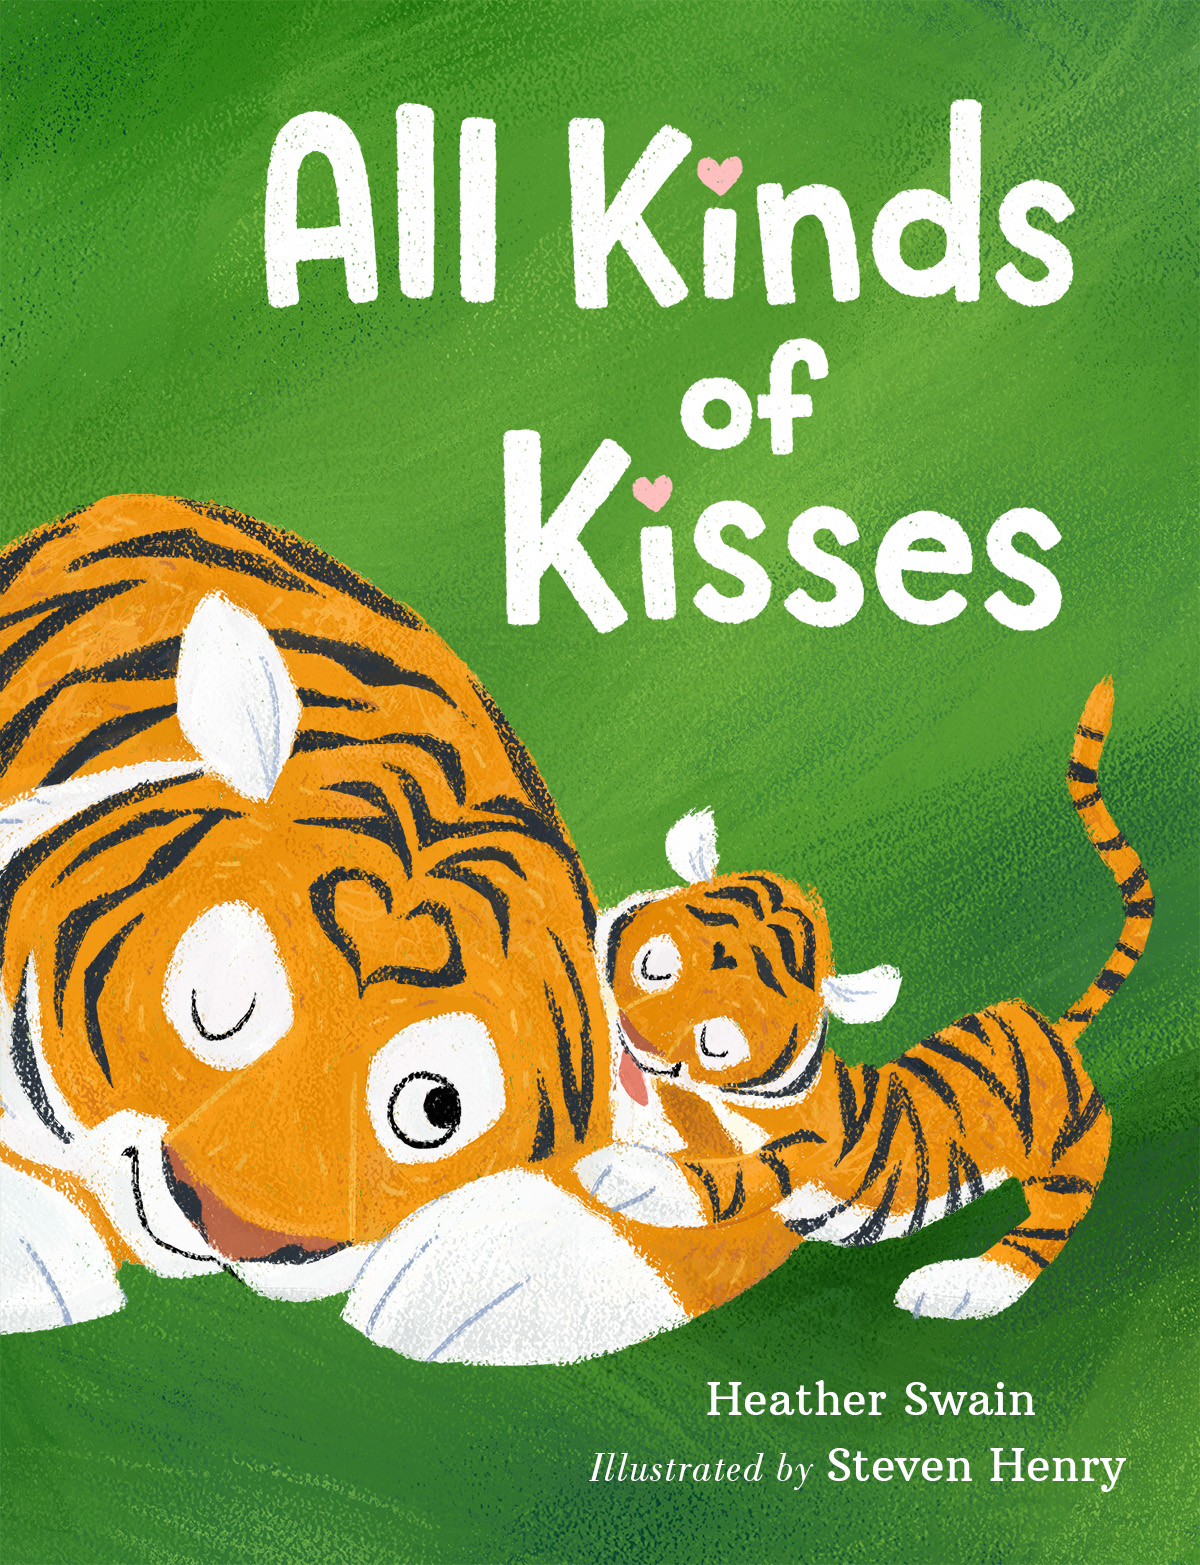 All Kinds Of Kisses cover Hand-drawn title Publisher: Feiwel & Friends / Macmillan (2016)